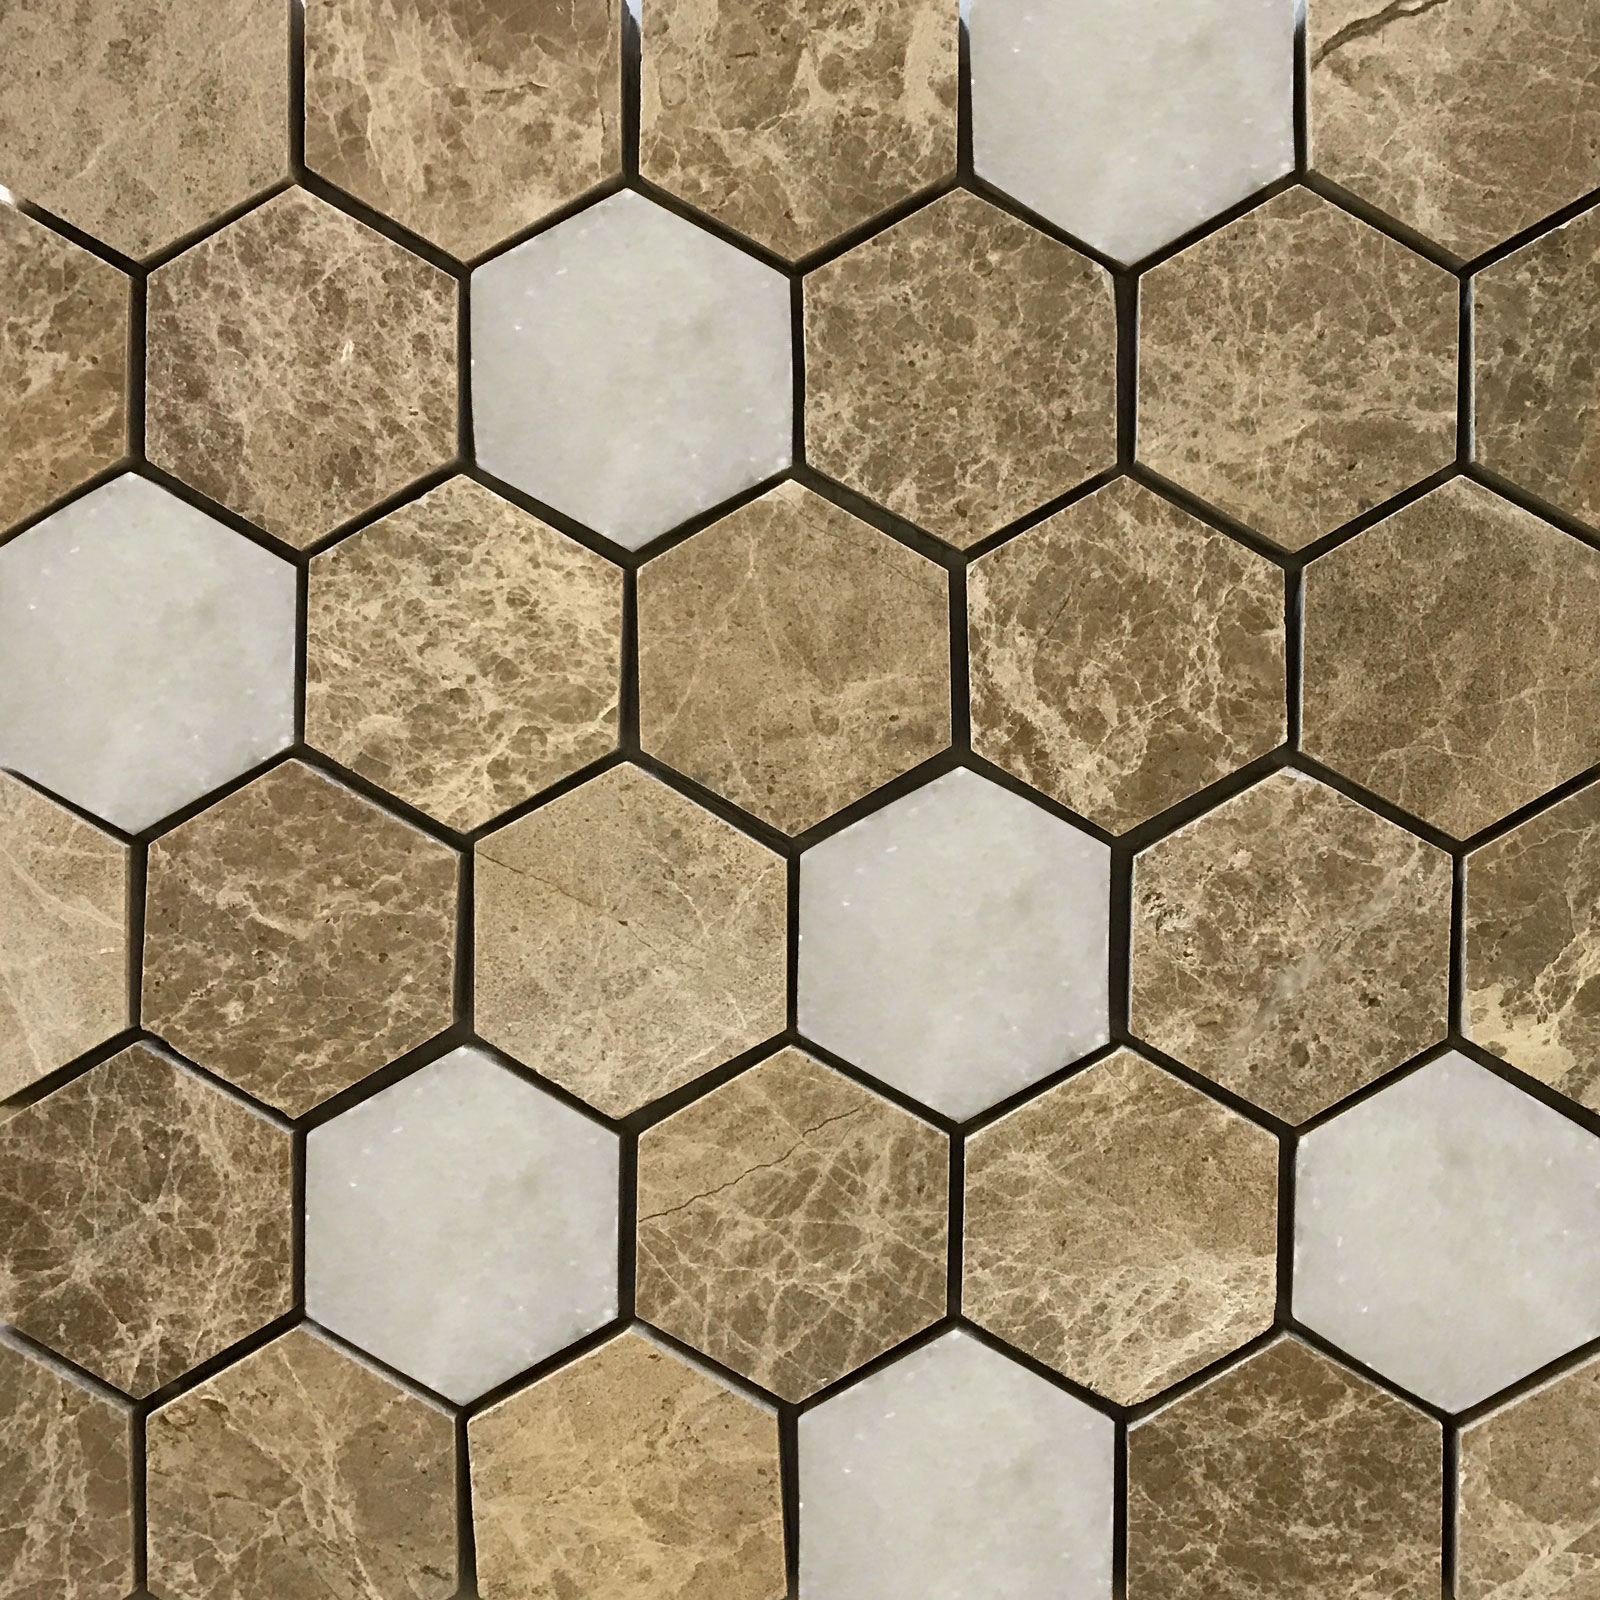 2 Inch Hexagon Mosaic Tile Emperador Light White Marble